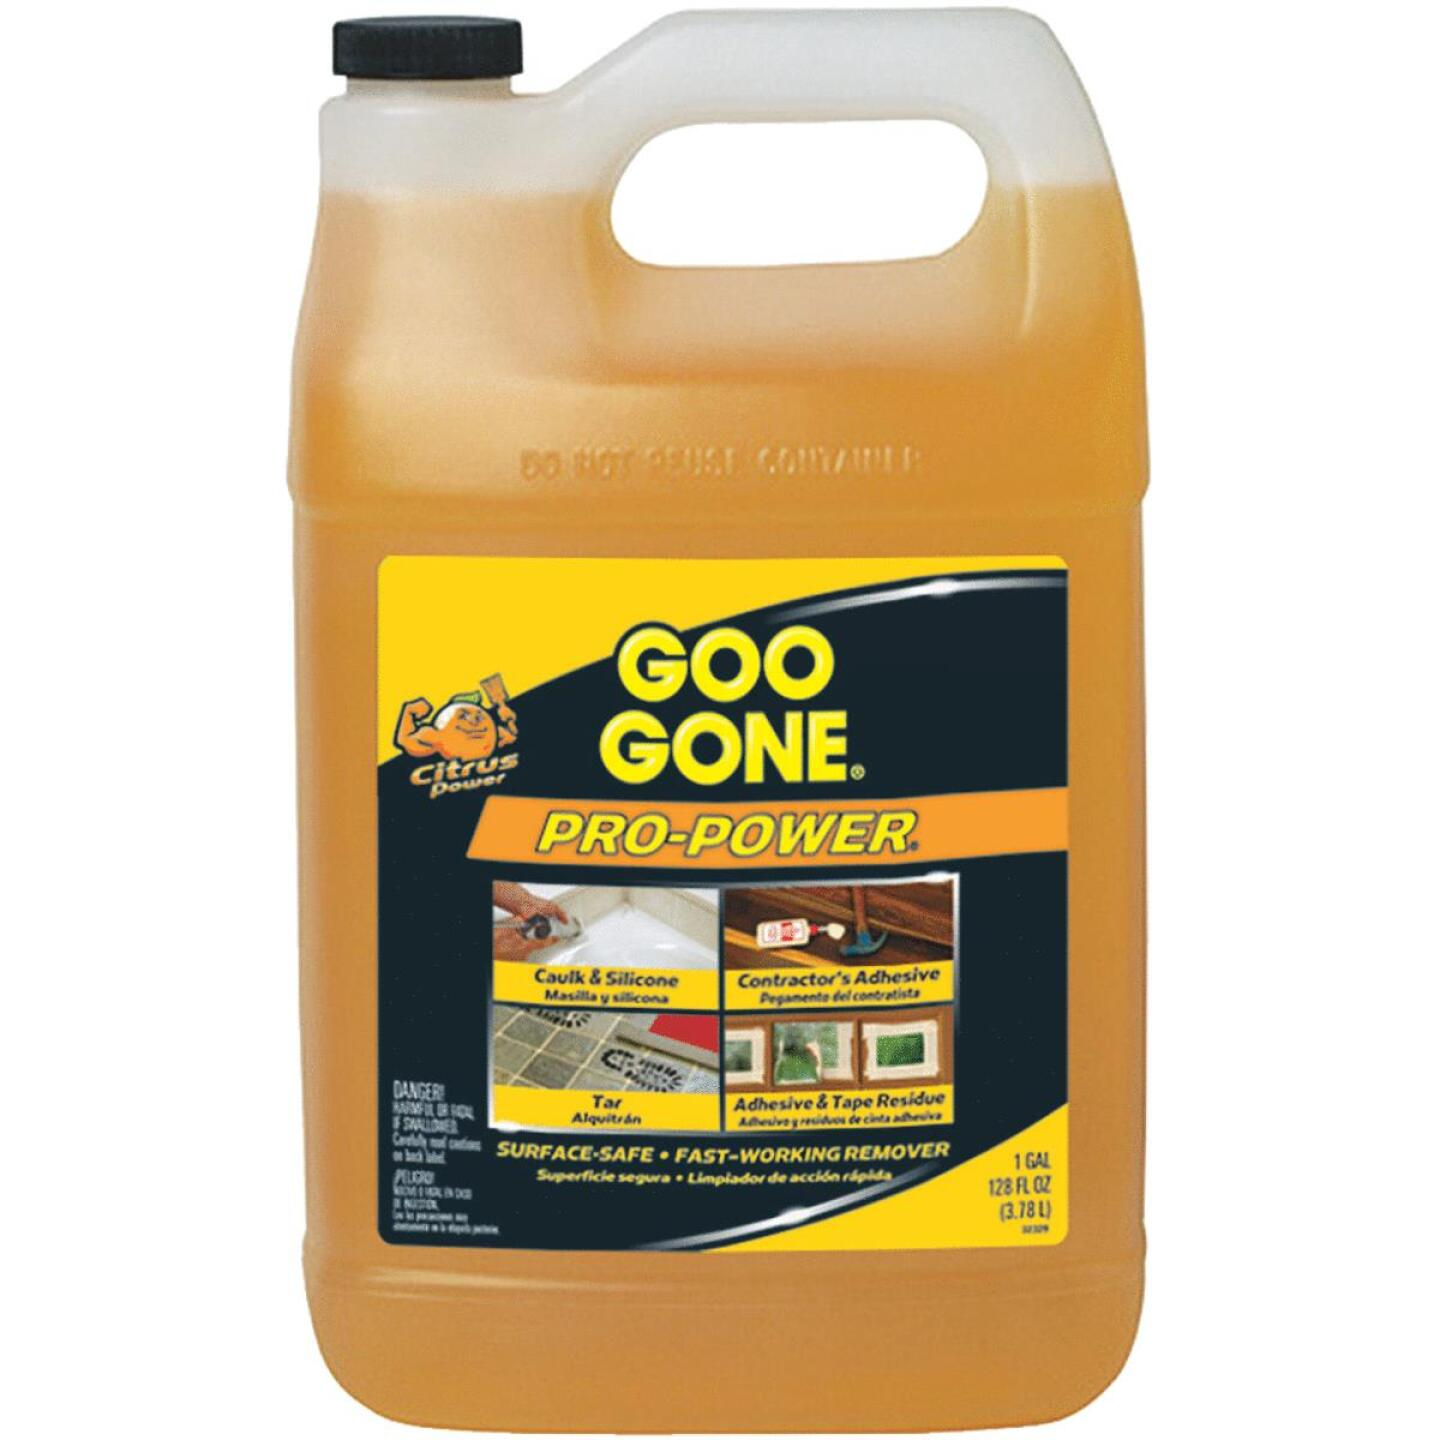 Goo Gone 1 Gal. Pro-Power Adhesive Remover Image 114